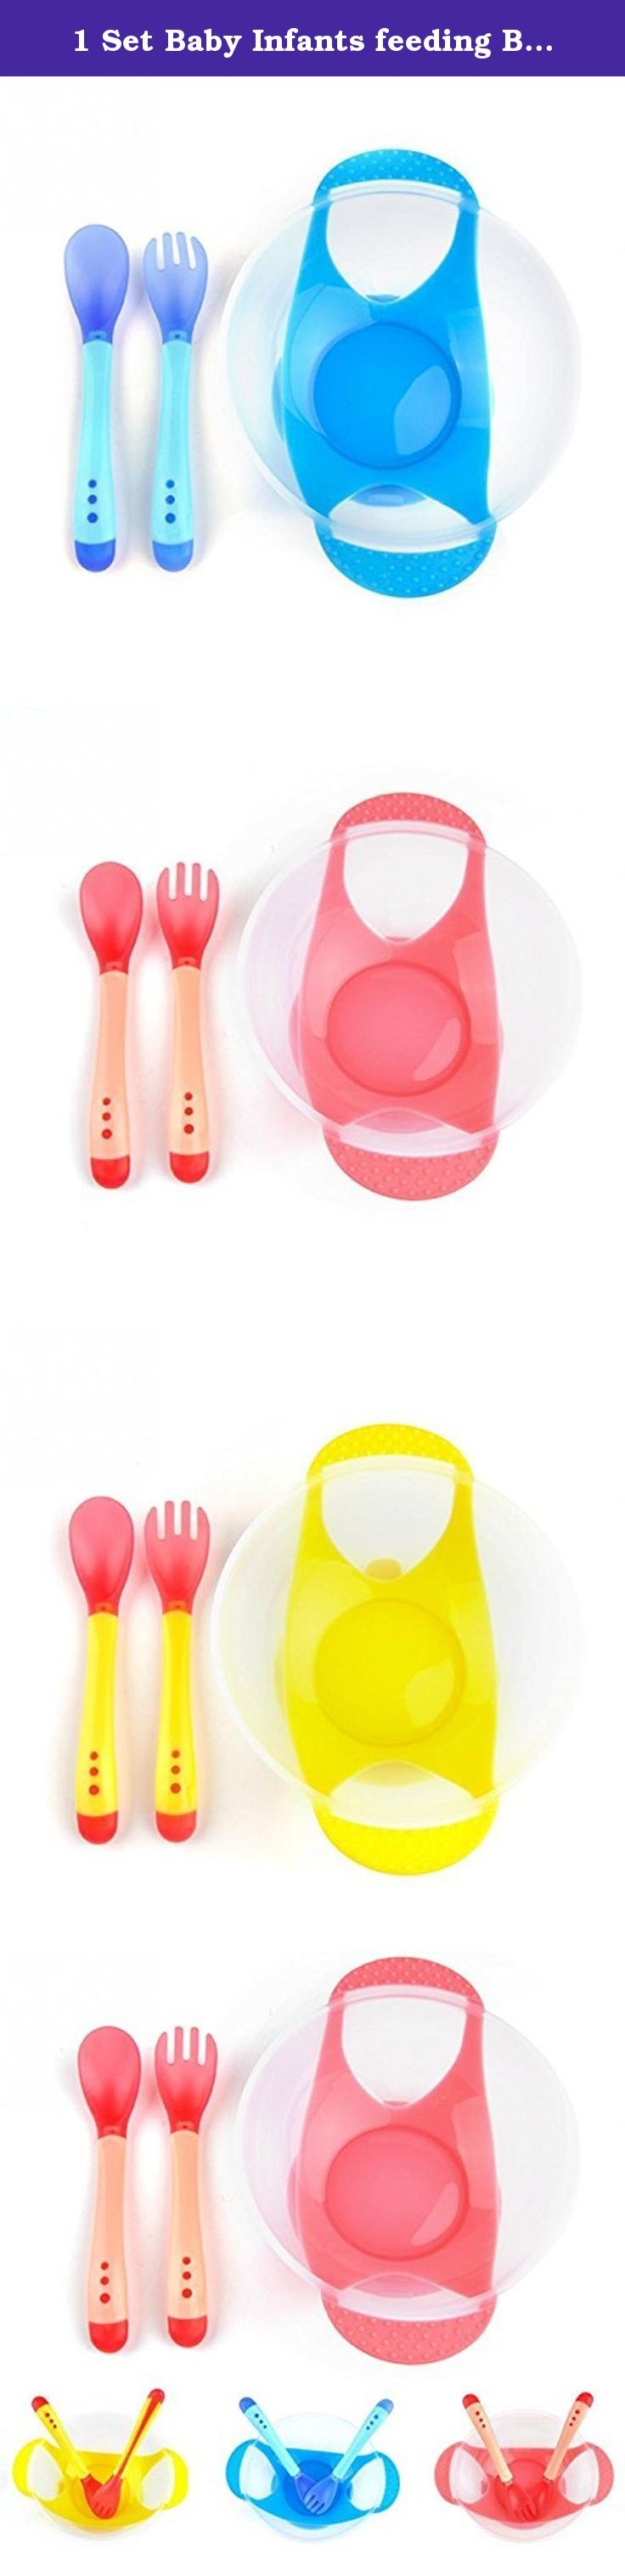 1 Set Baby Infants feeding Bowl With Sucker and Temperature Sensing Spoon Suction Cup Bowl Slip-resistant Tableware Set. Material : PC Pattern Type : Solid Certification : CIQ Brand Name : oem Model Number : / Type : Flatware Age Group : Babies Pattern : as photo Features: Can be broadly tested babies temperature material to prevent the baby was burned hot. Spoon over hot temperatures will change. Feeding part is based on the characteristics of the infant\'s mouth functions designed to...